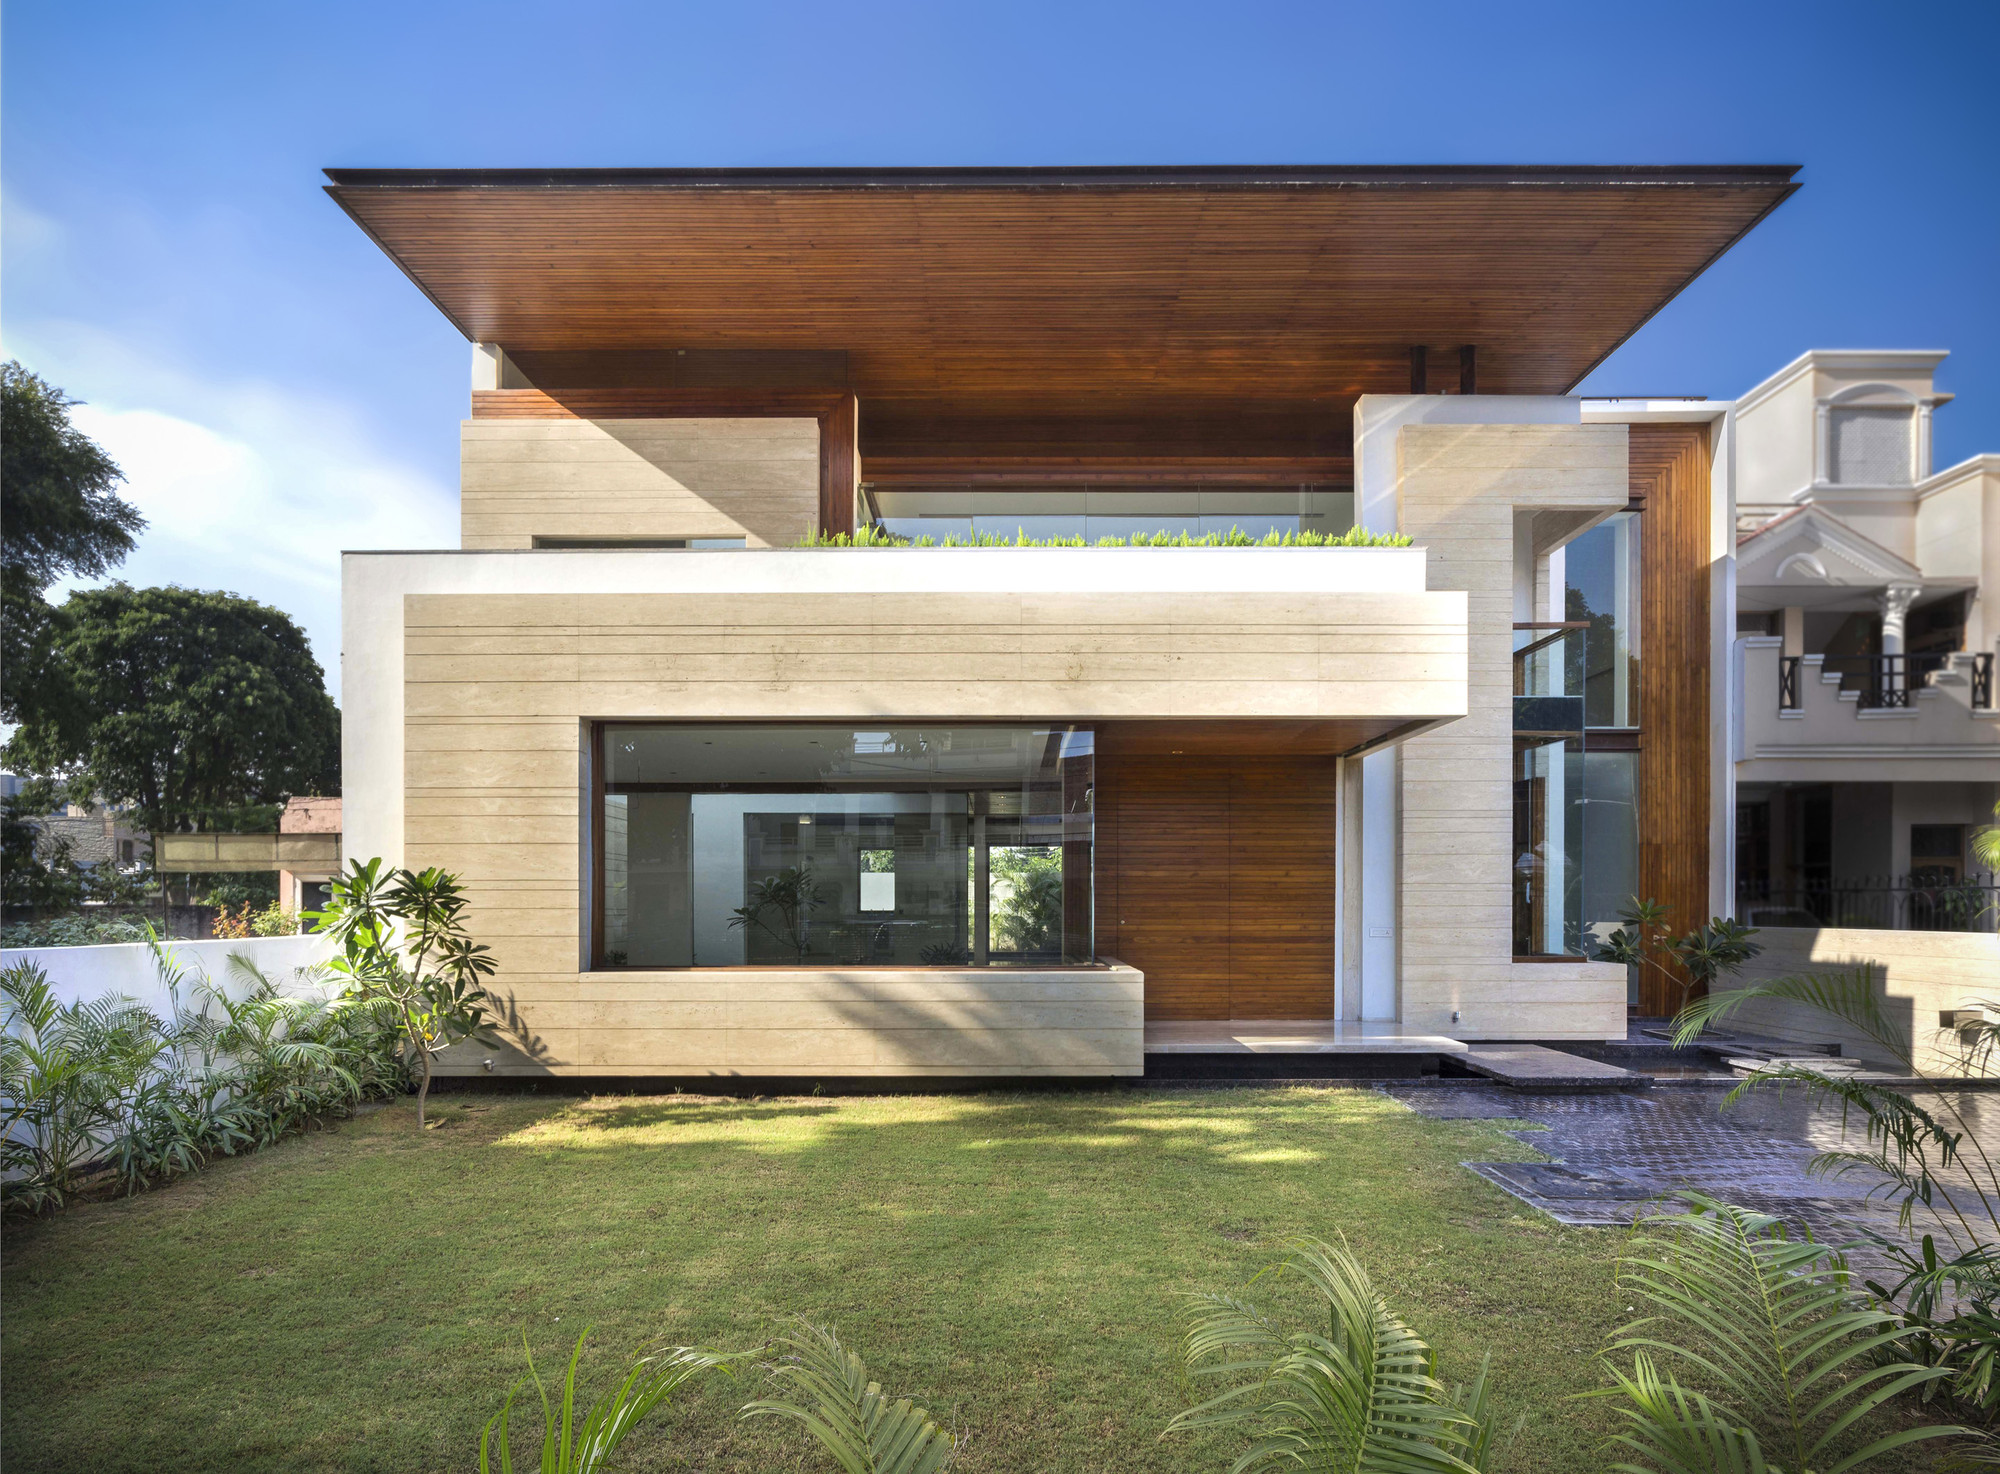 Gallery of House in Mohali / Charged Voids - 9